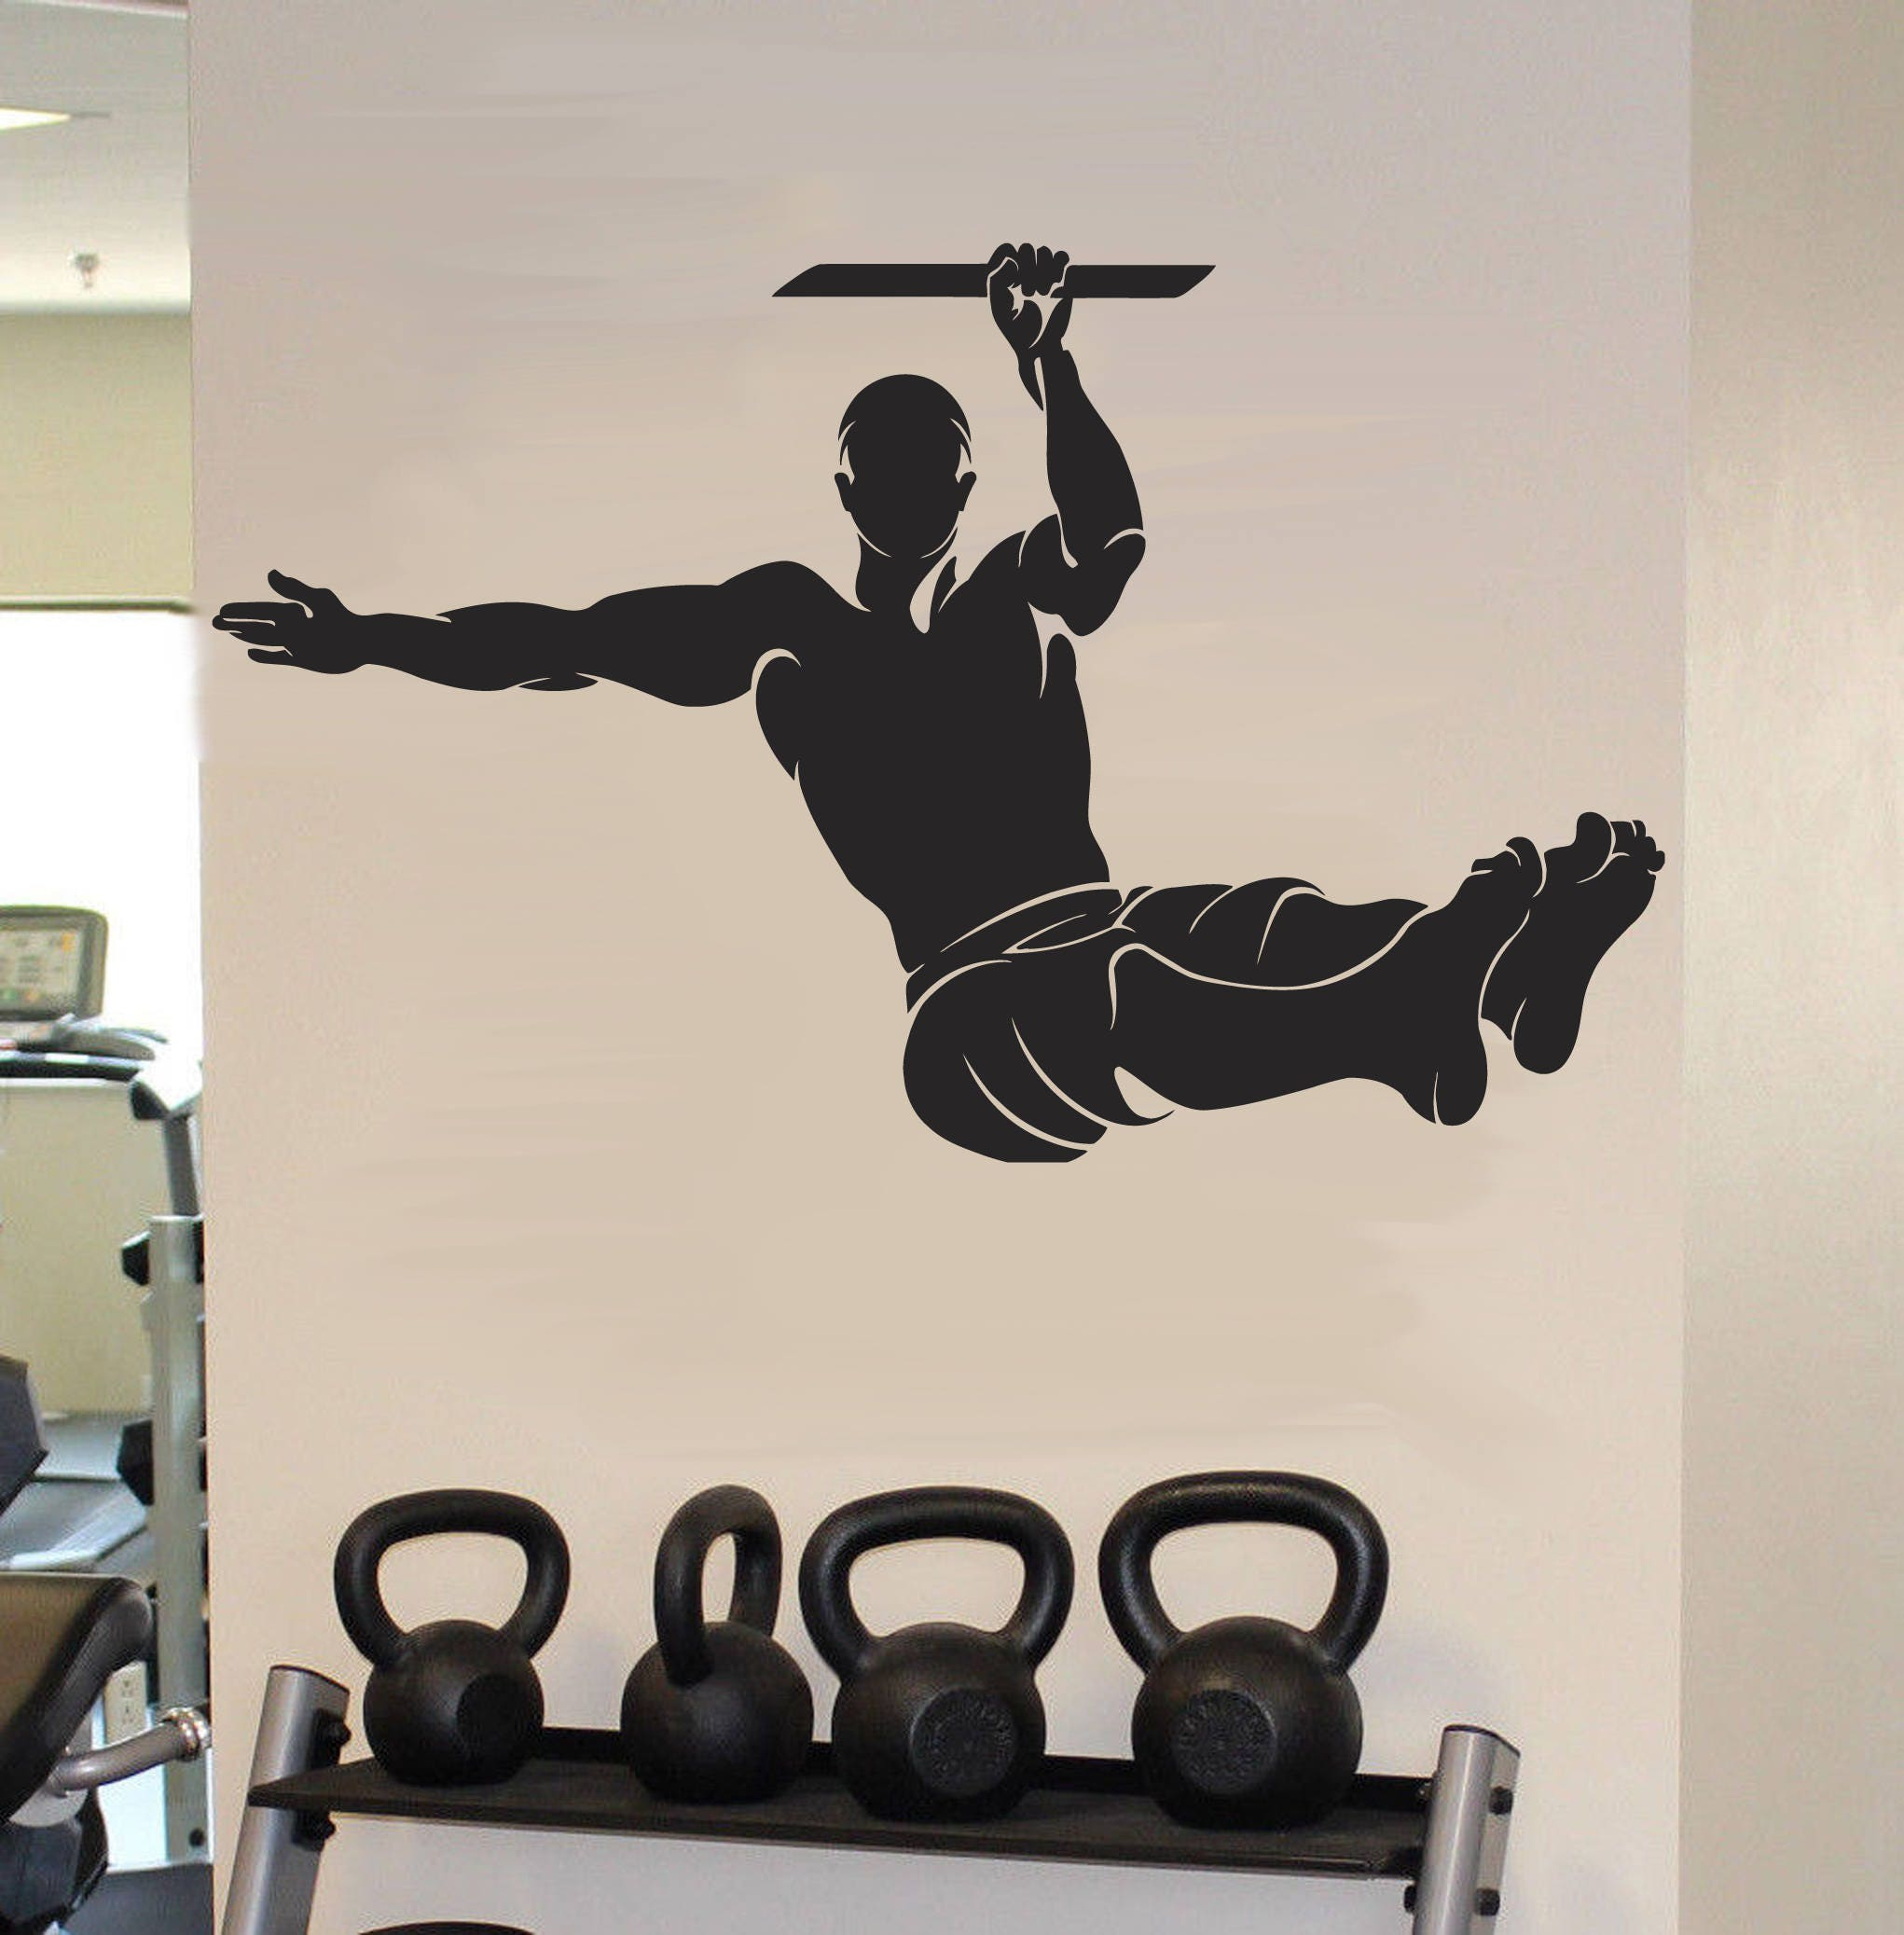 Street workout wall decals pull up exercise wall sticker etsy